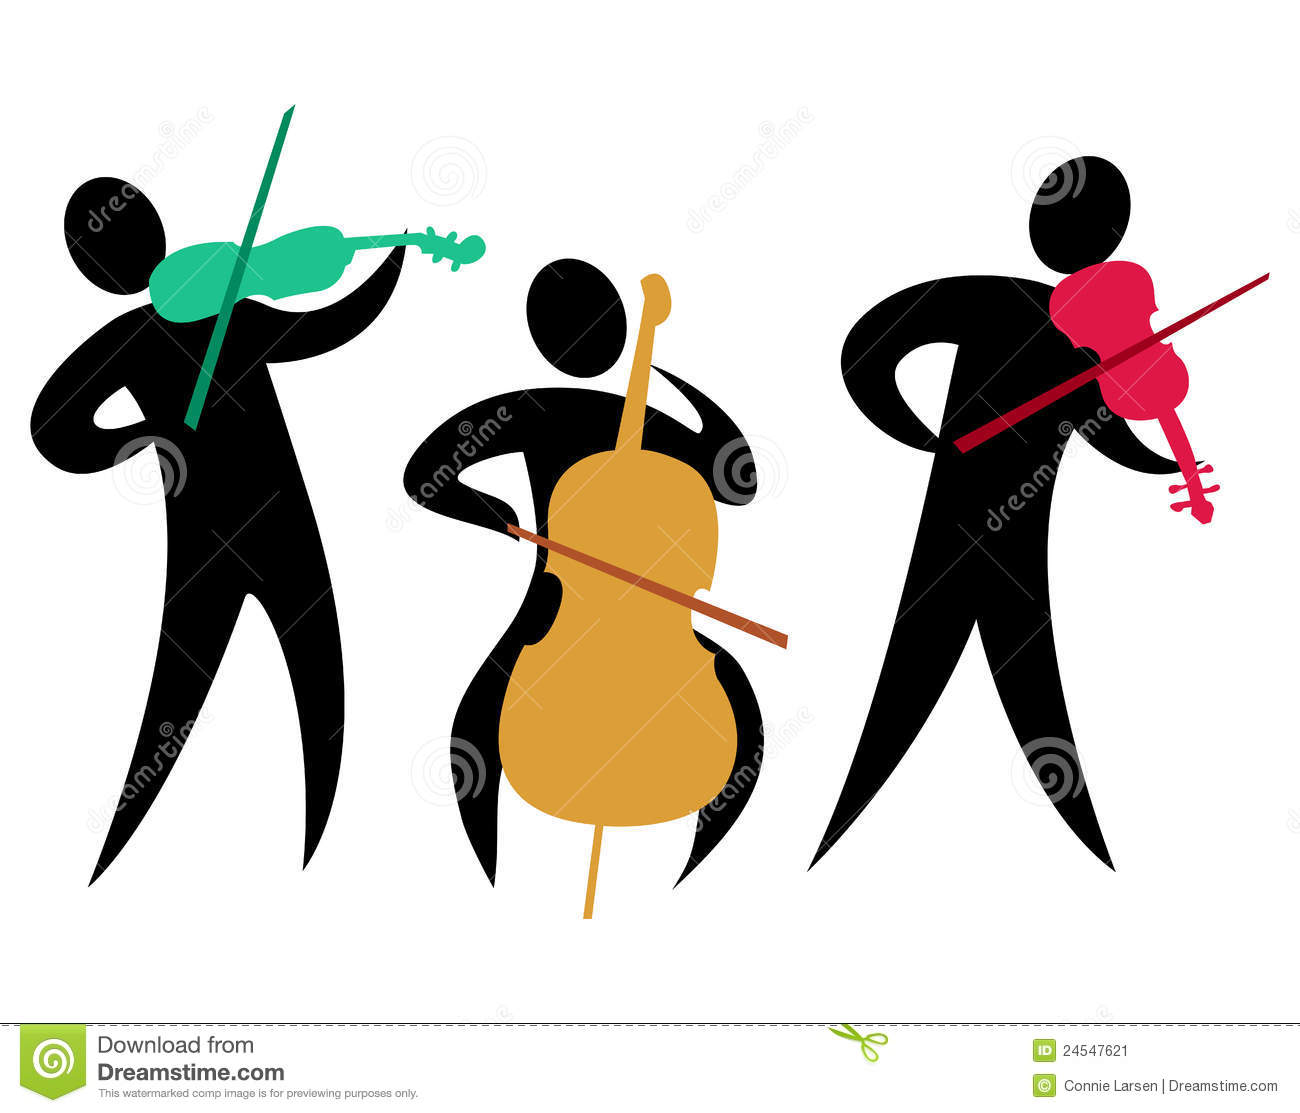 Youth orchestra clipart svg royalty free stock Six Bluffton musicans perform Sunday with Lima Area Youth ... svg royalty free stock